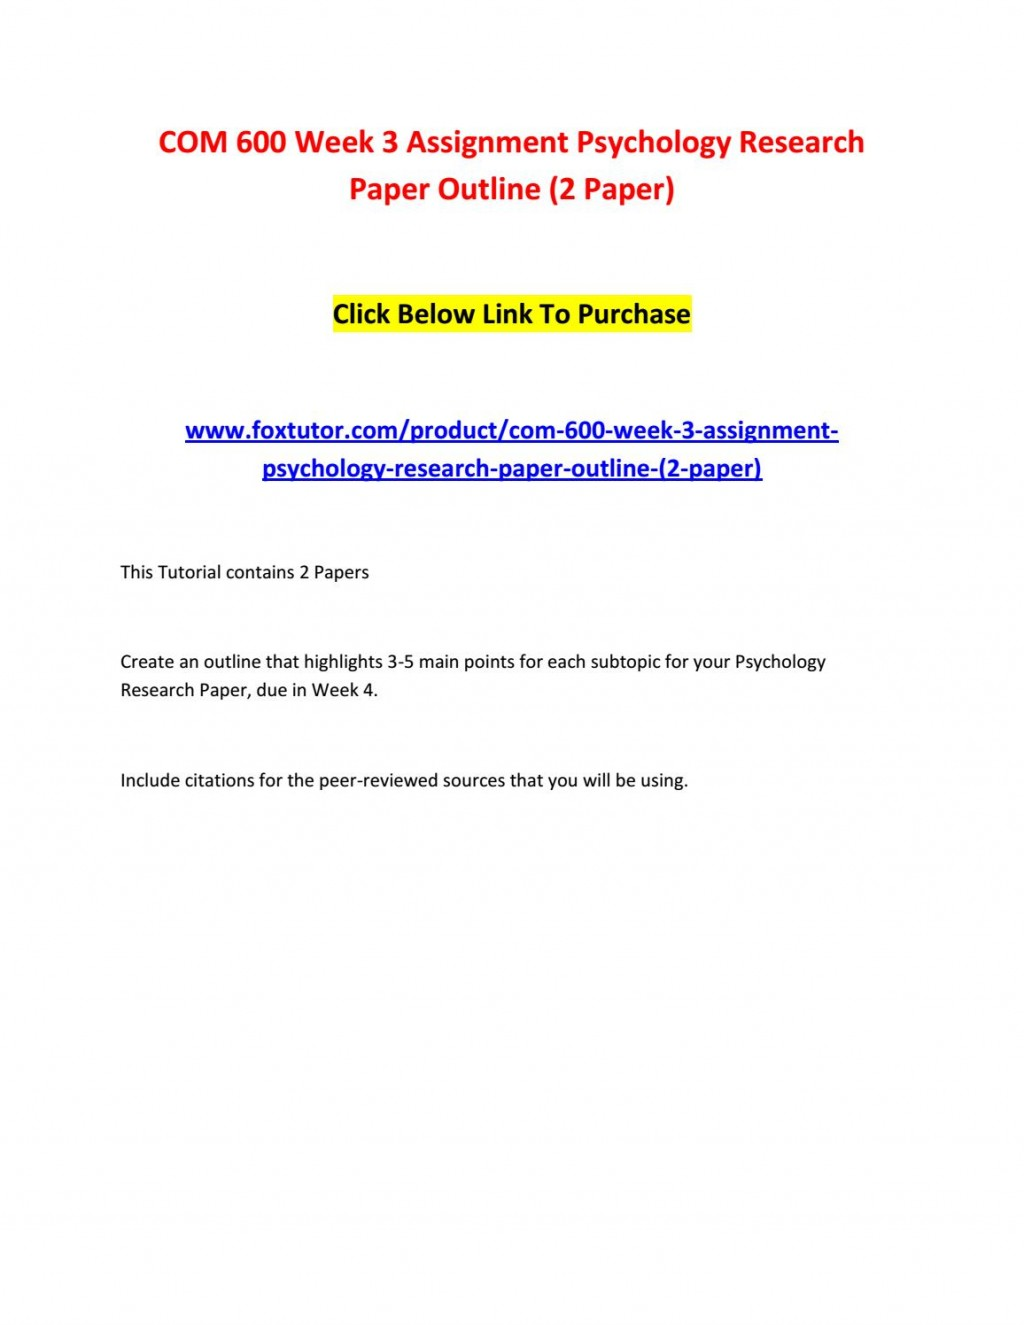 003 Page 1 Psychology Research Paper Outline Com Striking 600 Com/600 Large